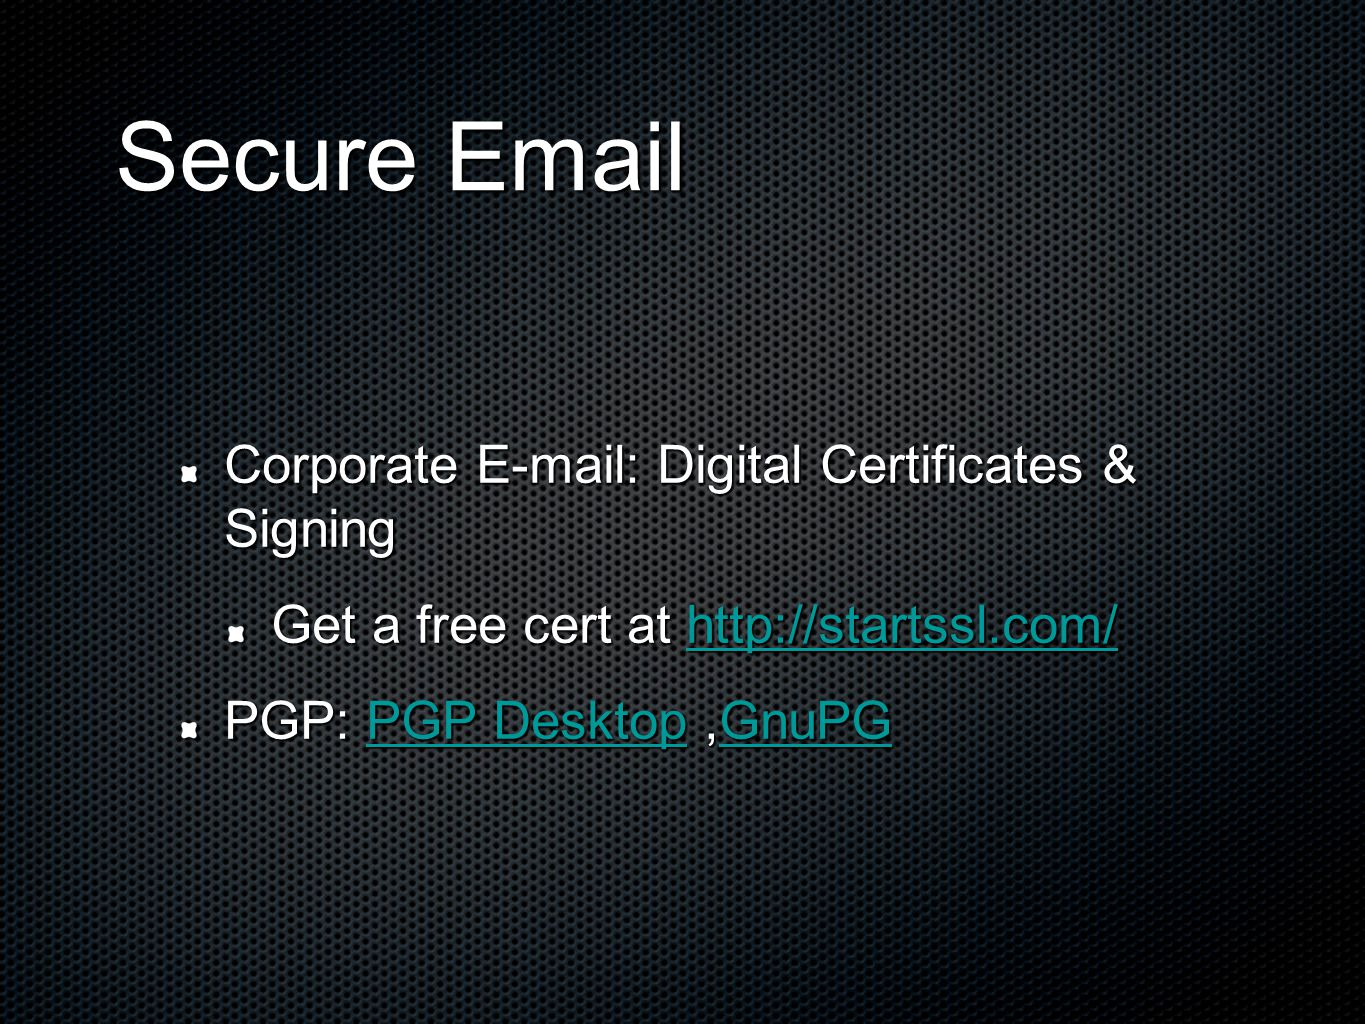 Secure Email Secure Email Corporate E-mail: Digital Certificates & Signing Get a free cert at http://startssl.com/ http://startssl.com/ PGP: PGP Desktop,GnuPG PGP DesktopGnuPGPGP DesktopGnuPG